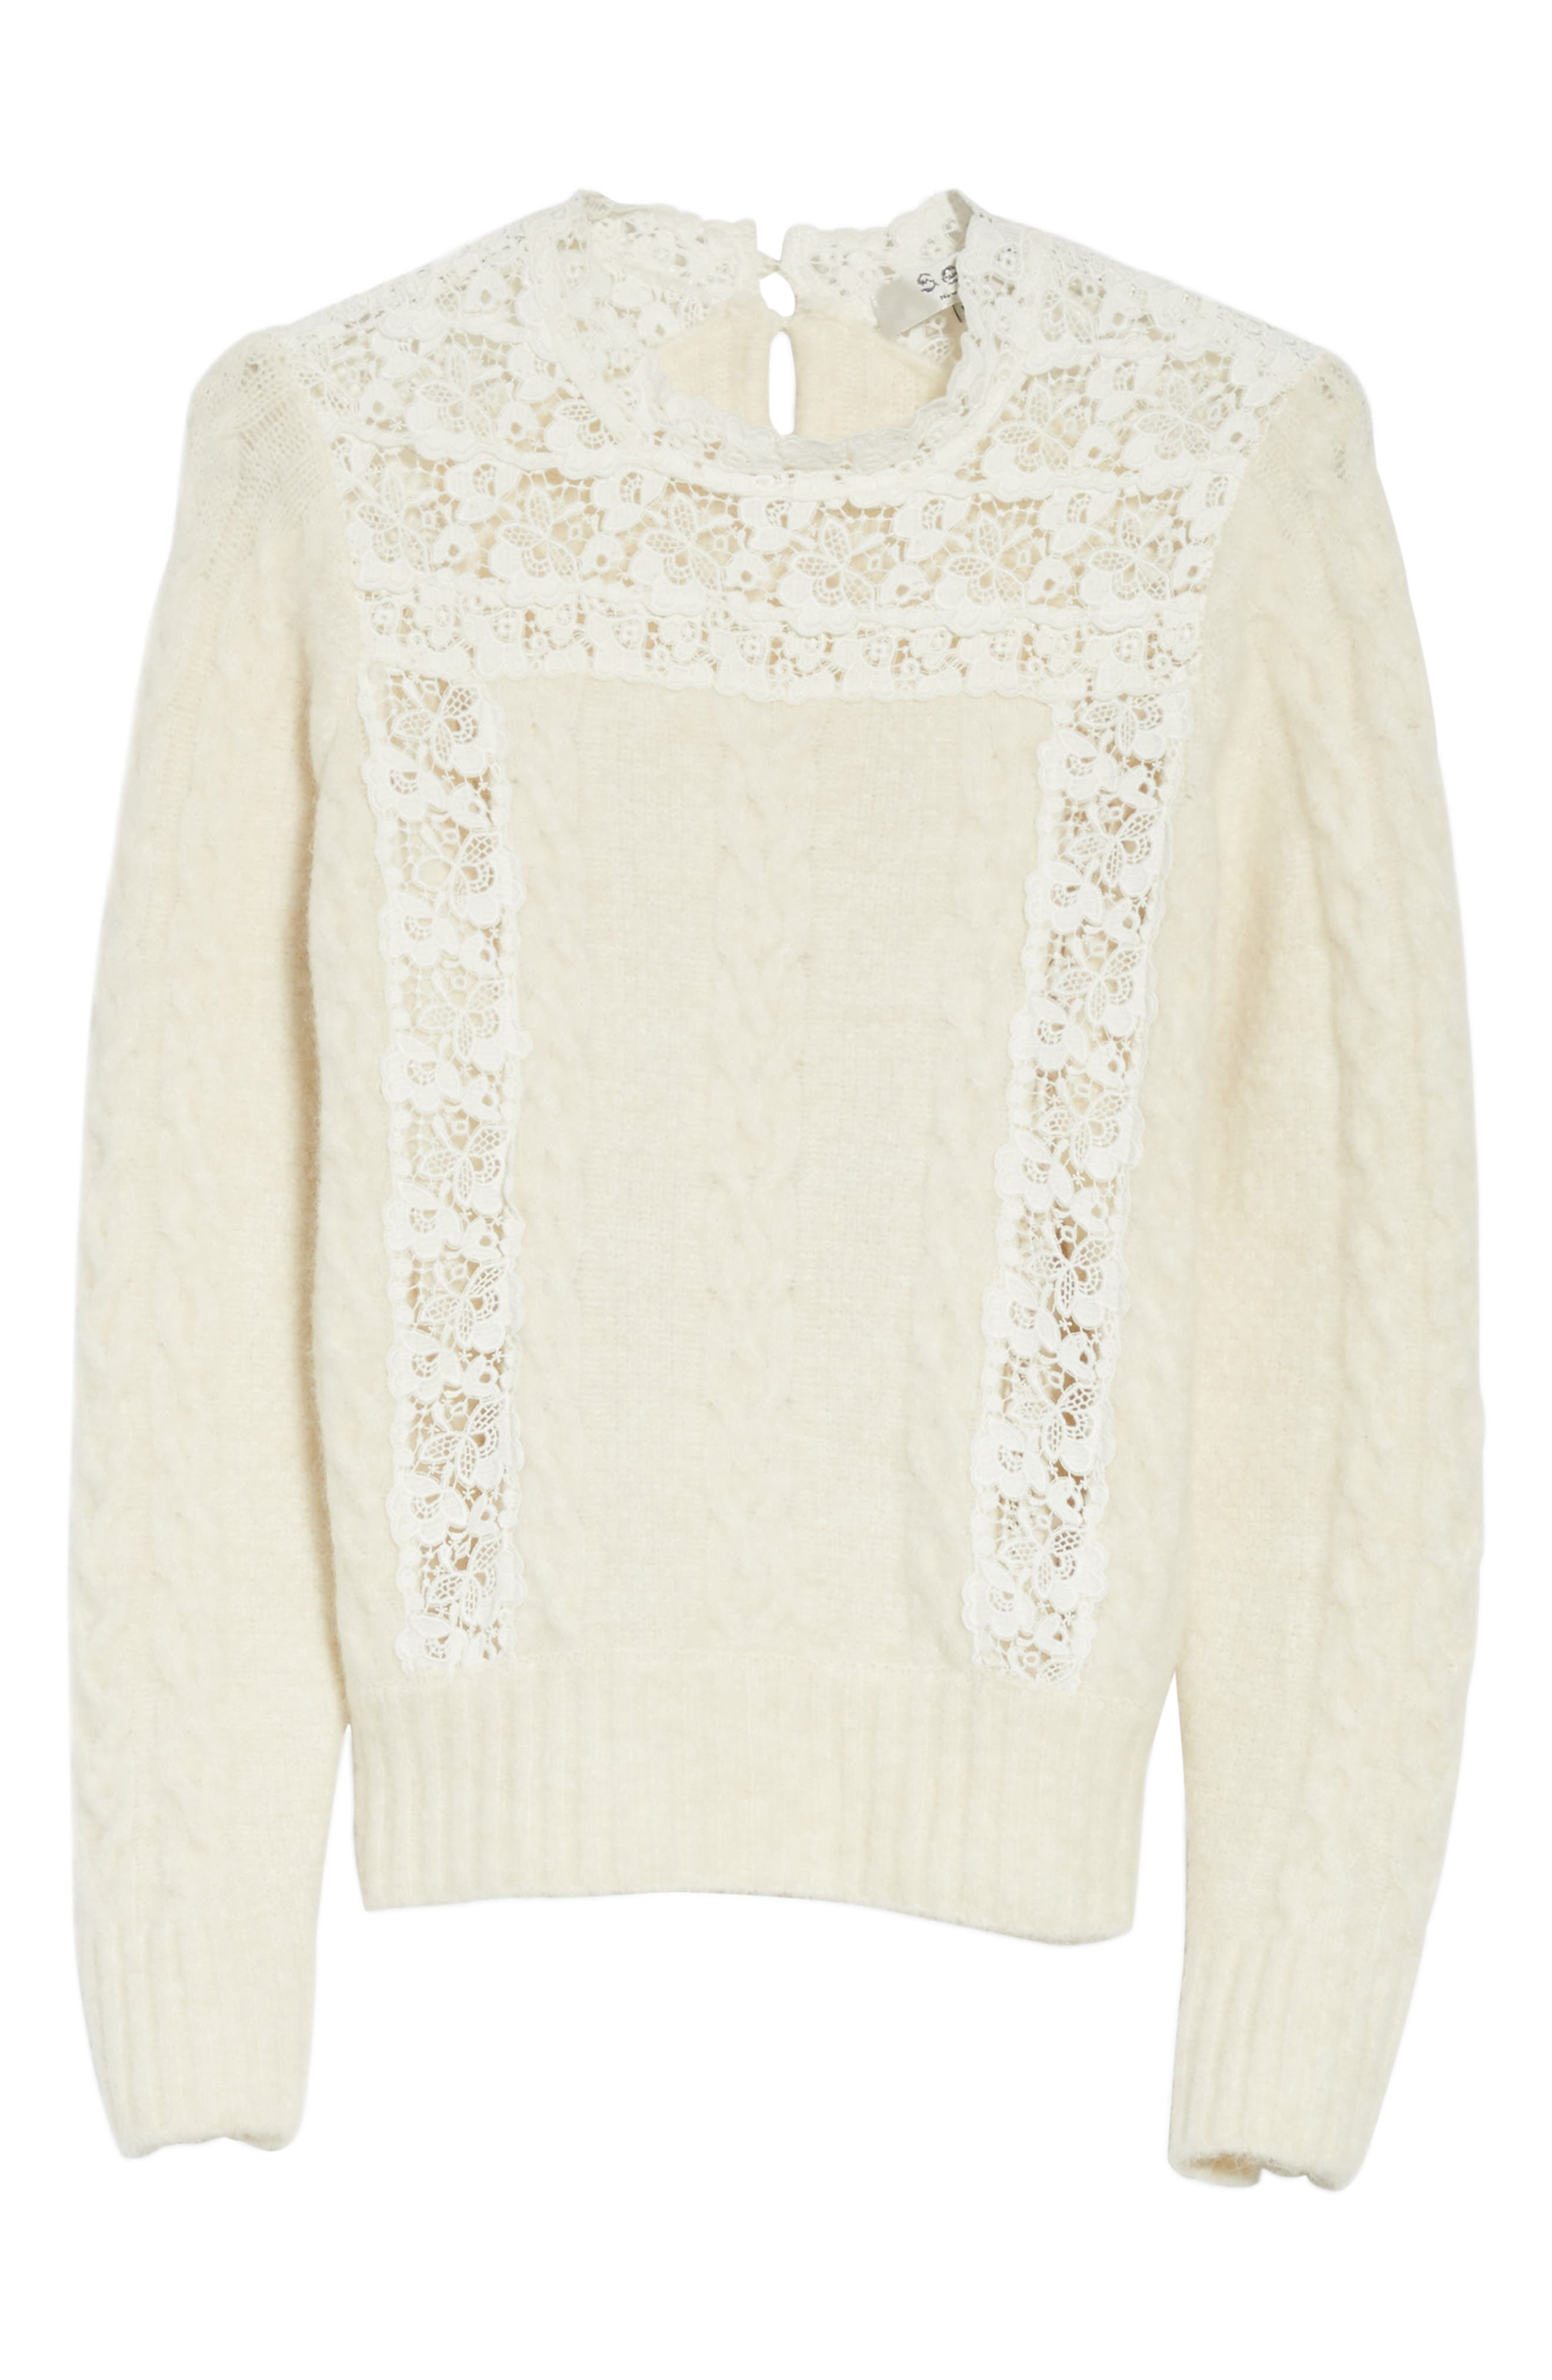 Lace Lace Inset Sweater,                             Alternate thumbnail 6, color,                             900